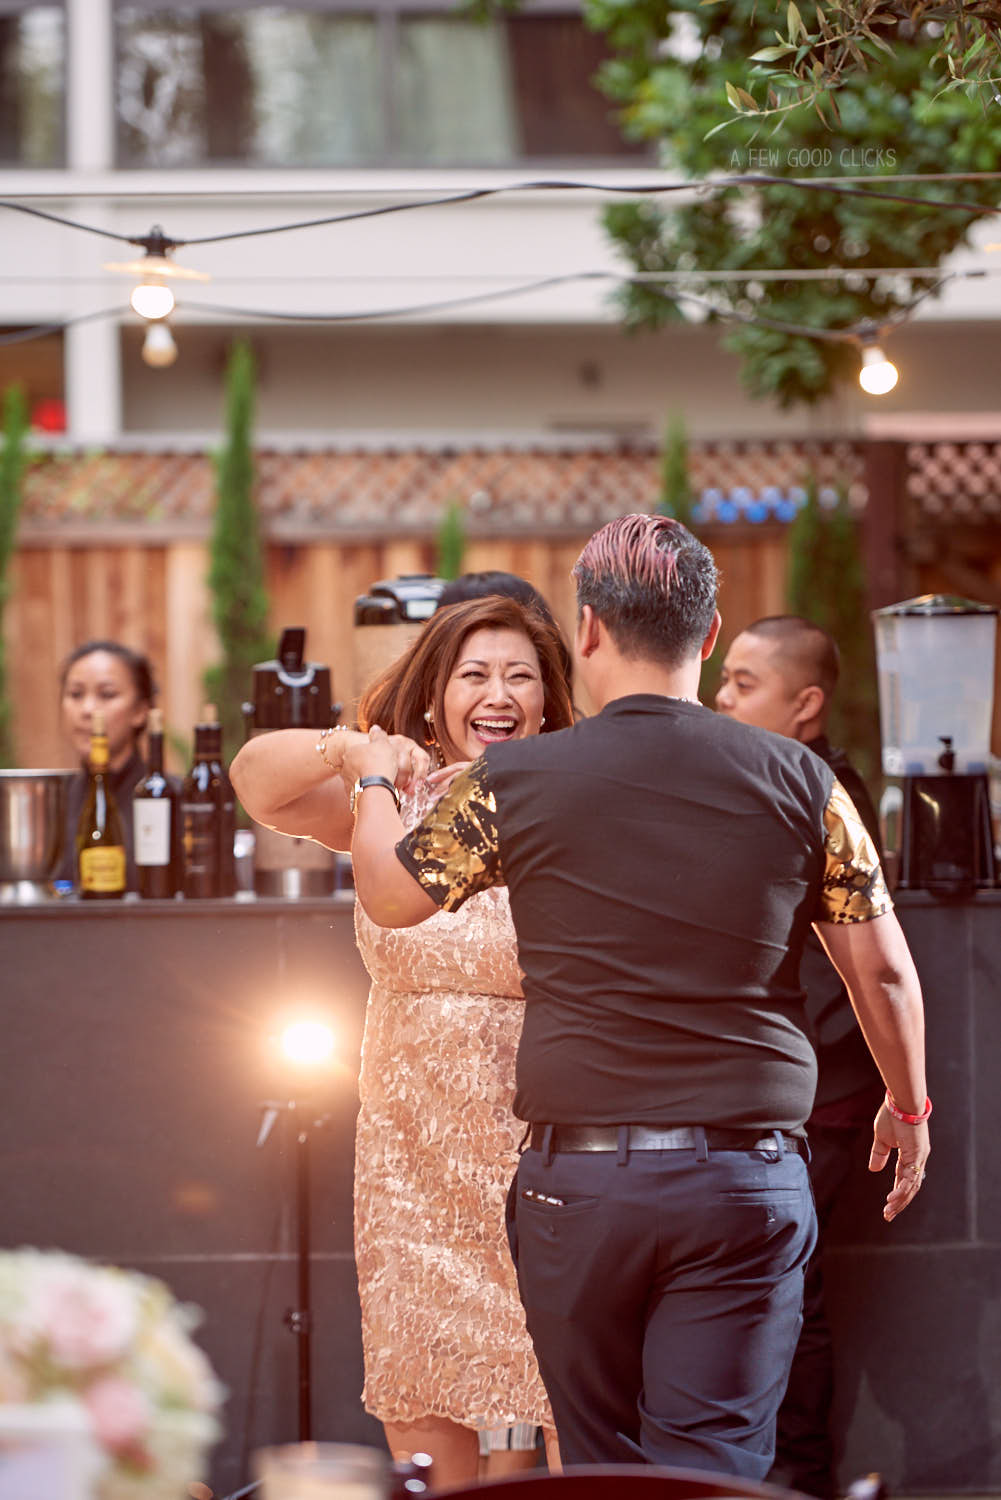 50th-birthday-party-dancing-photography-a-few-good-clicks